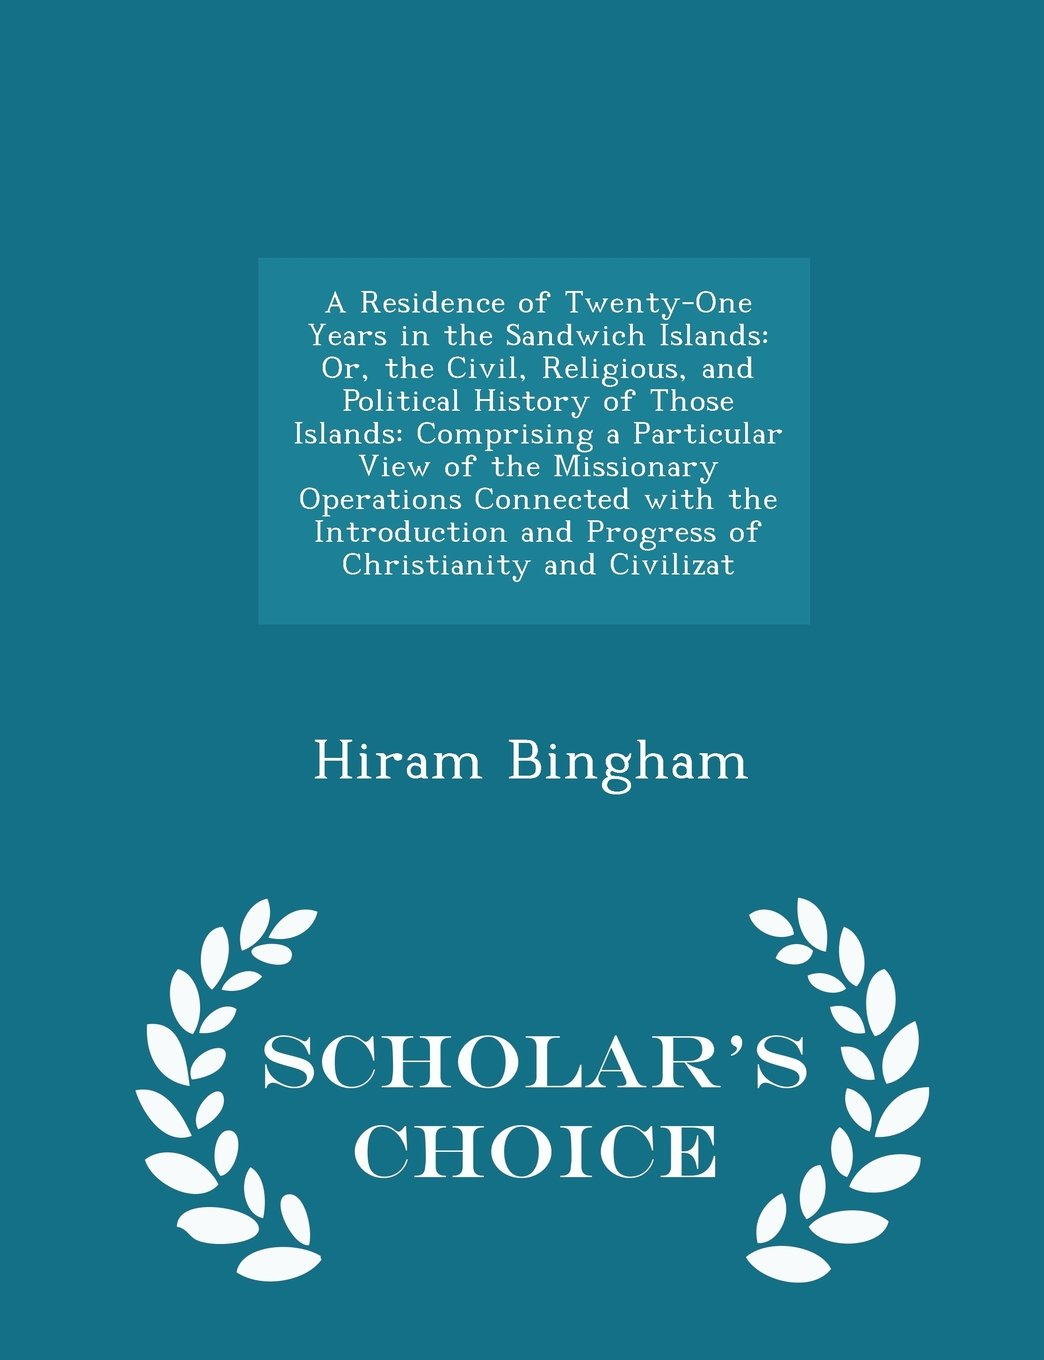 Download A Residence of Twenty-One Years in the Sandwich Islands: Or, the Civil, Religious, and Political History of Those Islands: Comprising a Particular ... and Progress of Christianity and Civilizat pdf